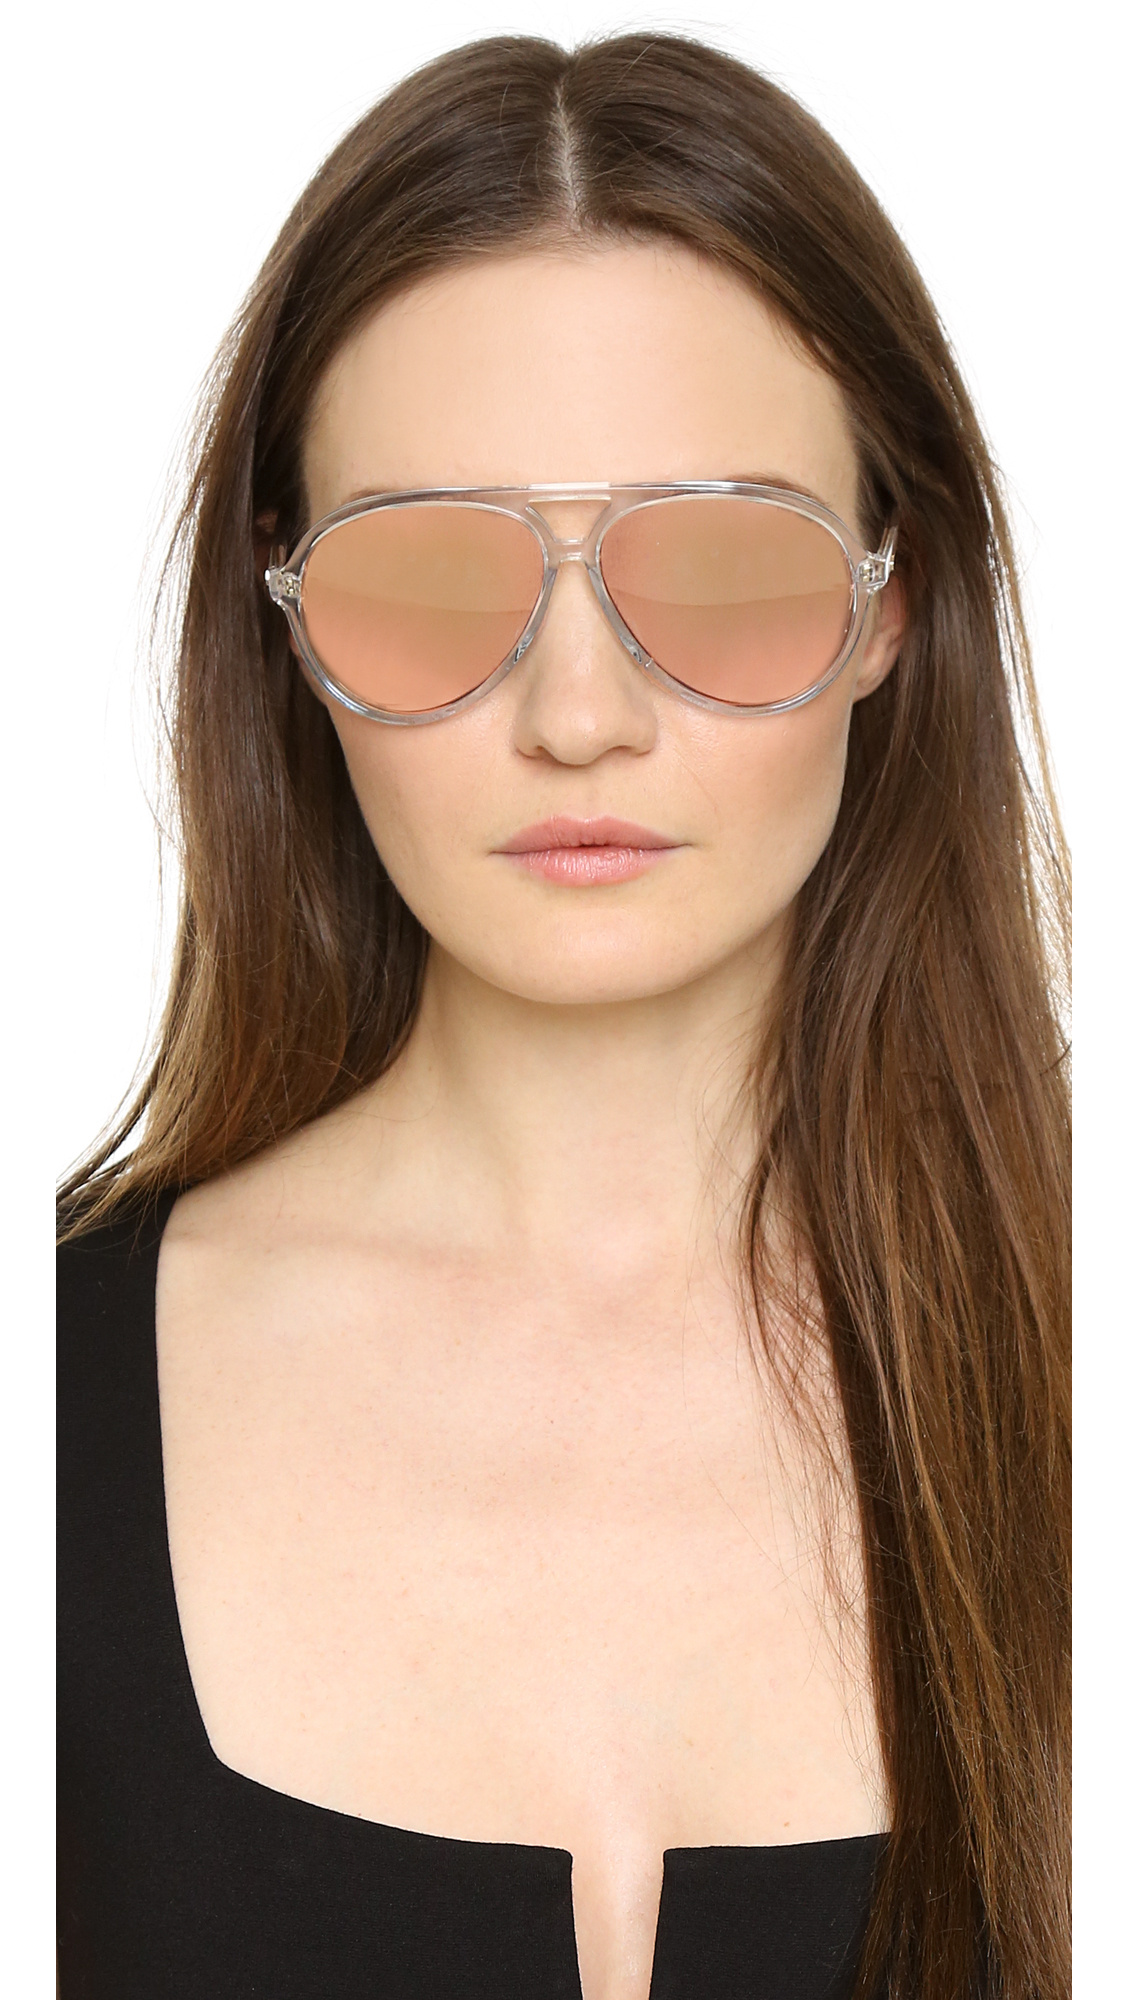 Matthew Williamson Aviator gradient sunglasses SOE4rXxrb